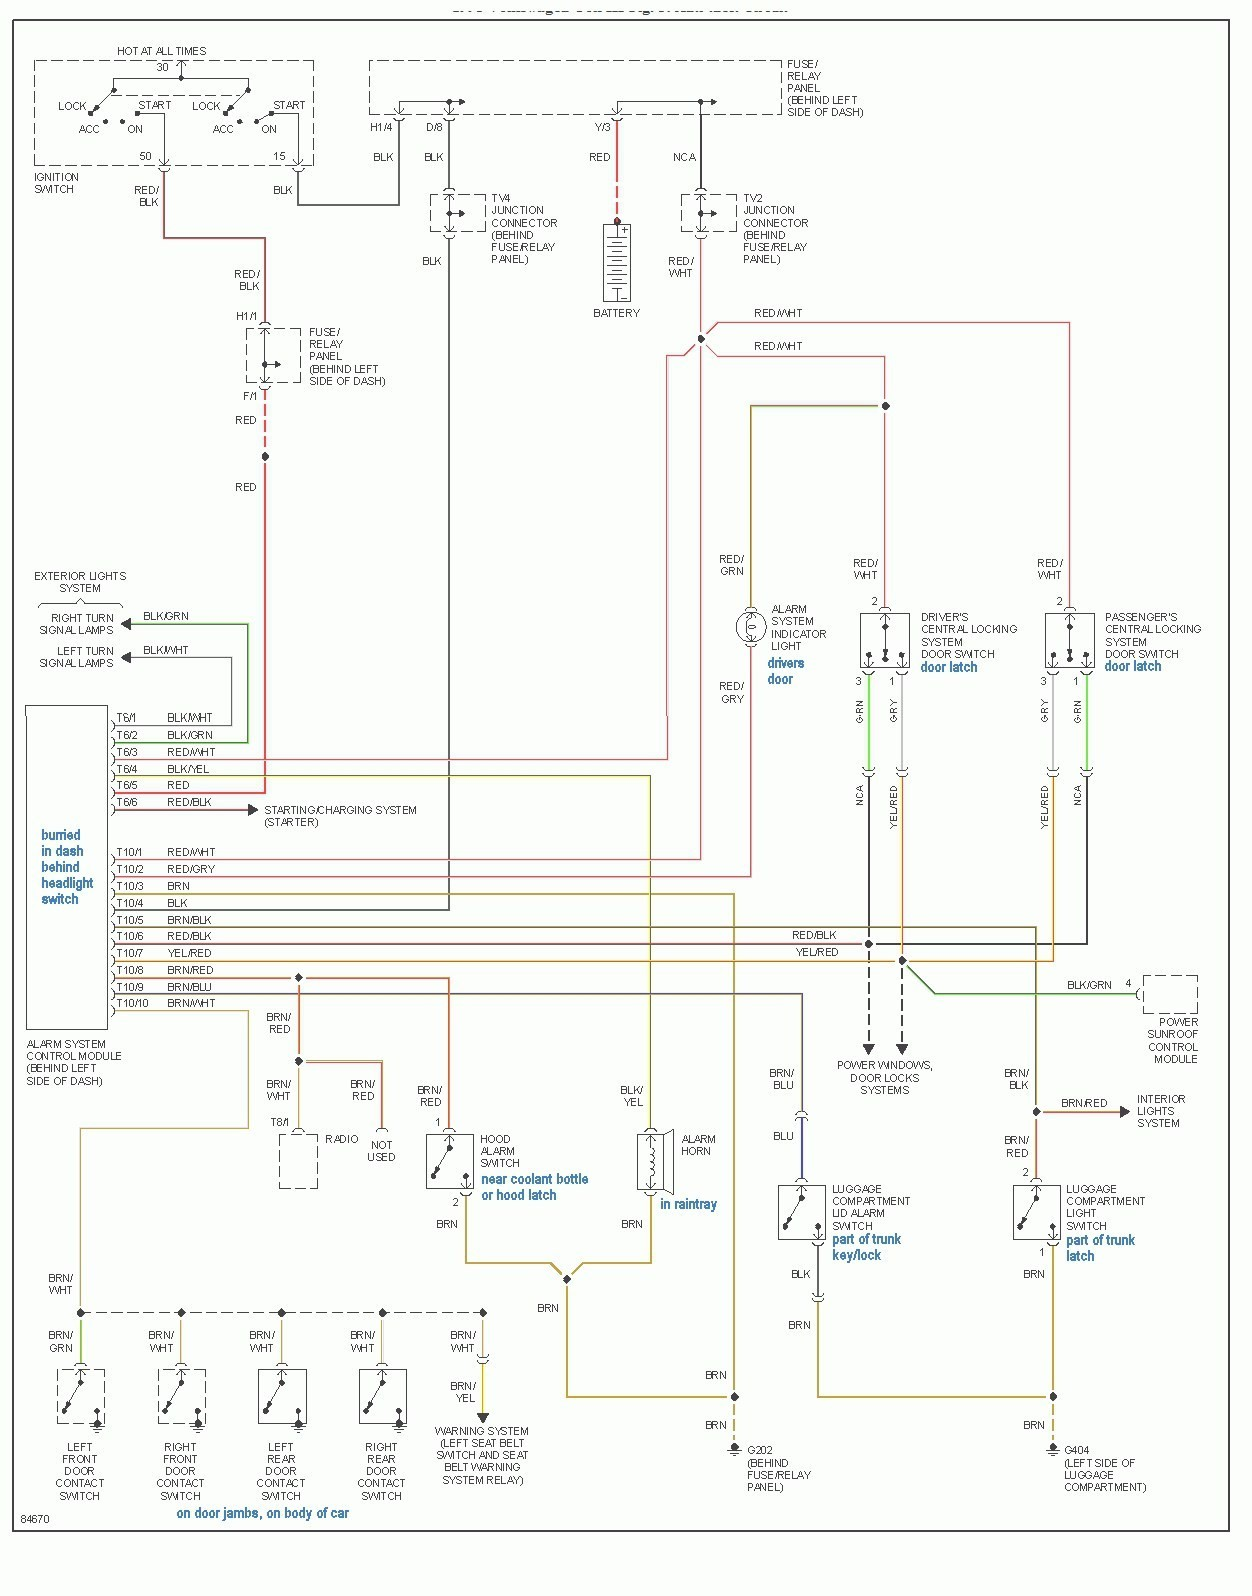 DIAGRAM] 2005 Vw Pat Wiring Diagram FULL Version HD Quality Wiring Diagram  - EVOLVEGARDENDIAGRAM.K-DANSE.FRK-danse.fr